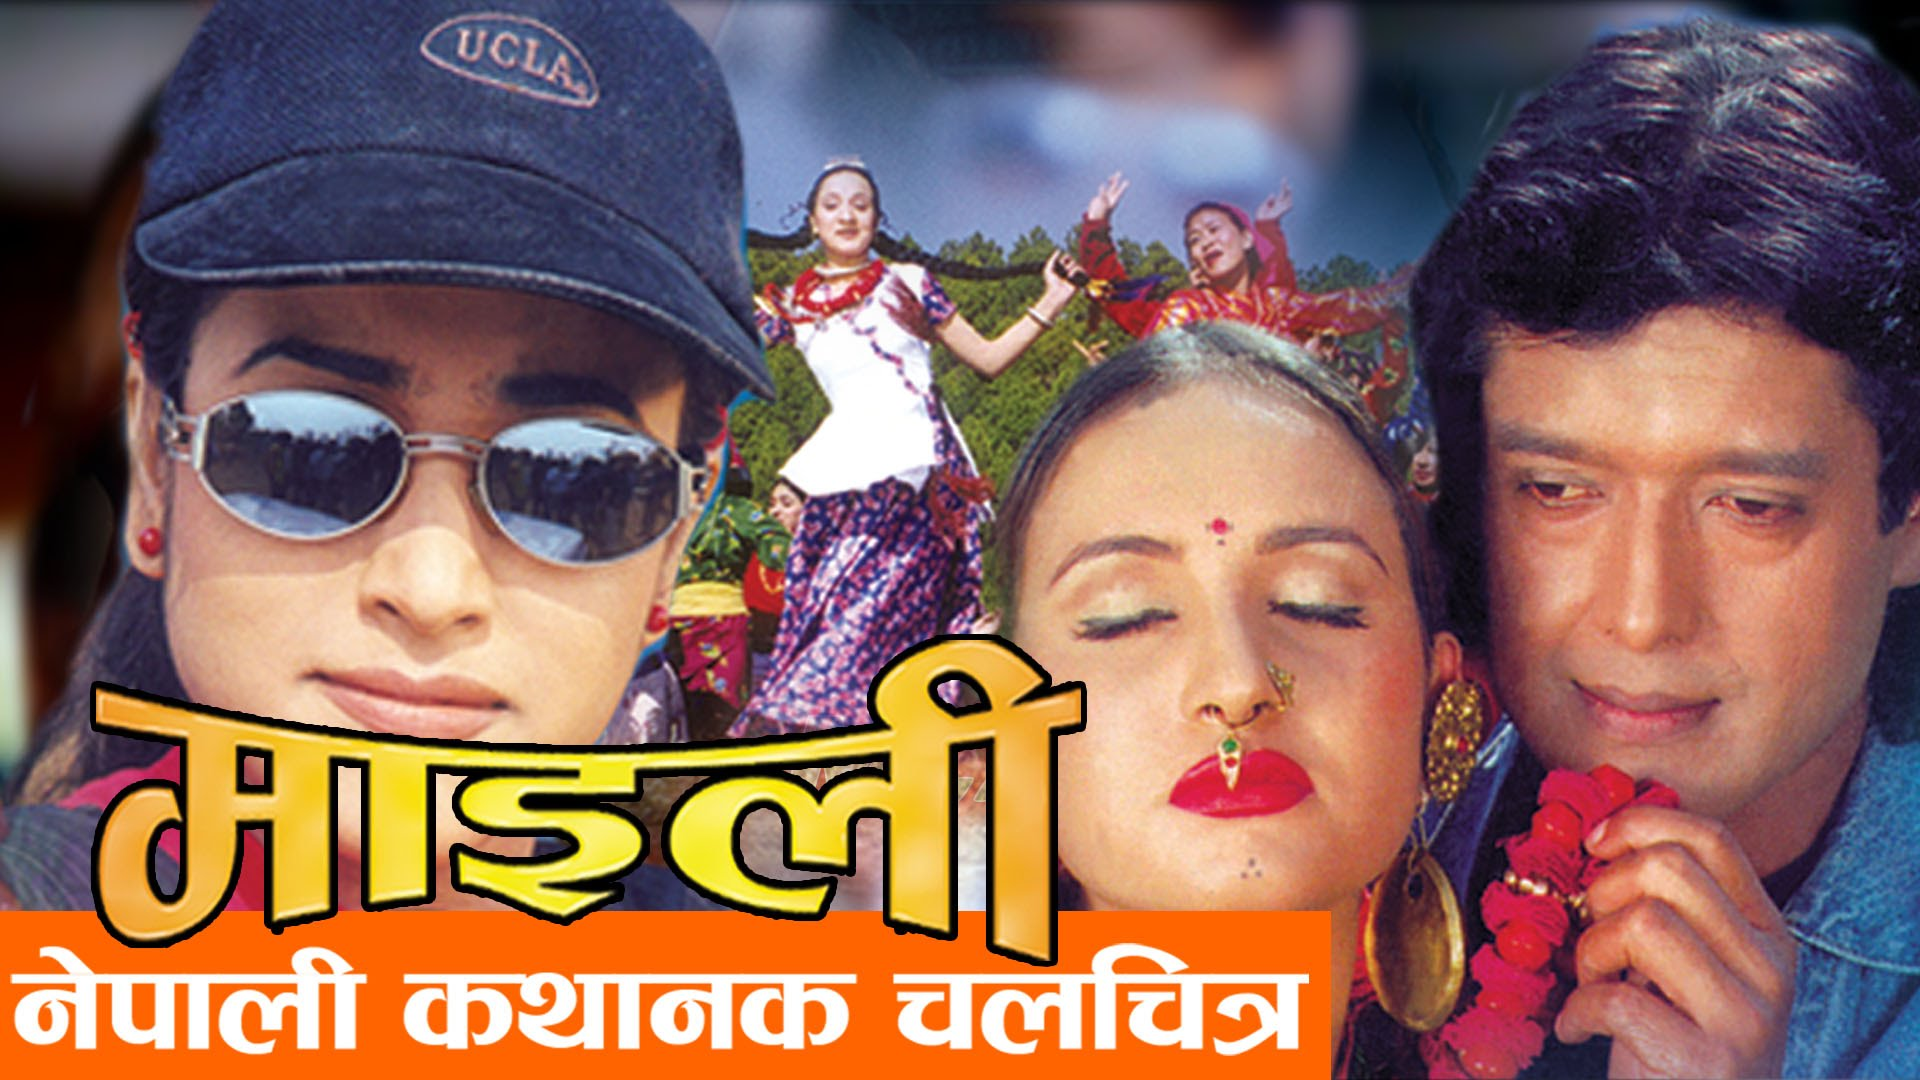 The Maili film, which was produced by DB Thapa